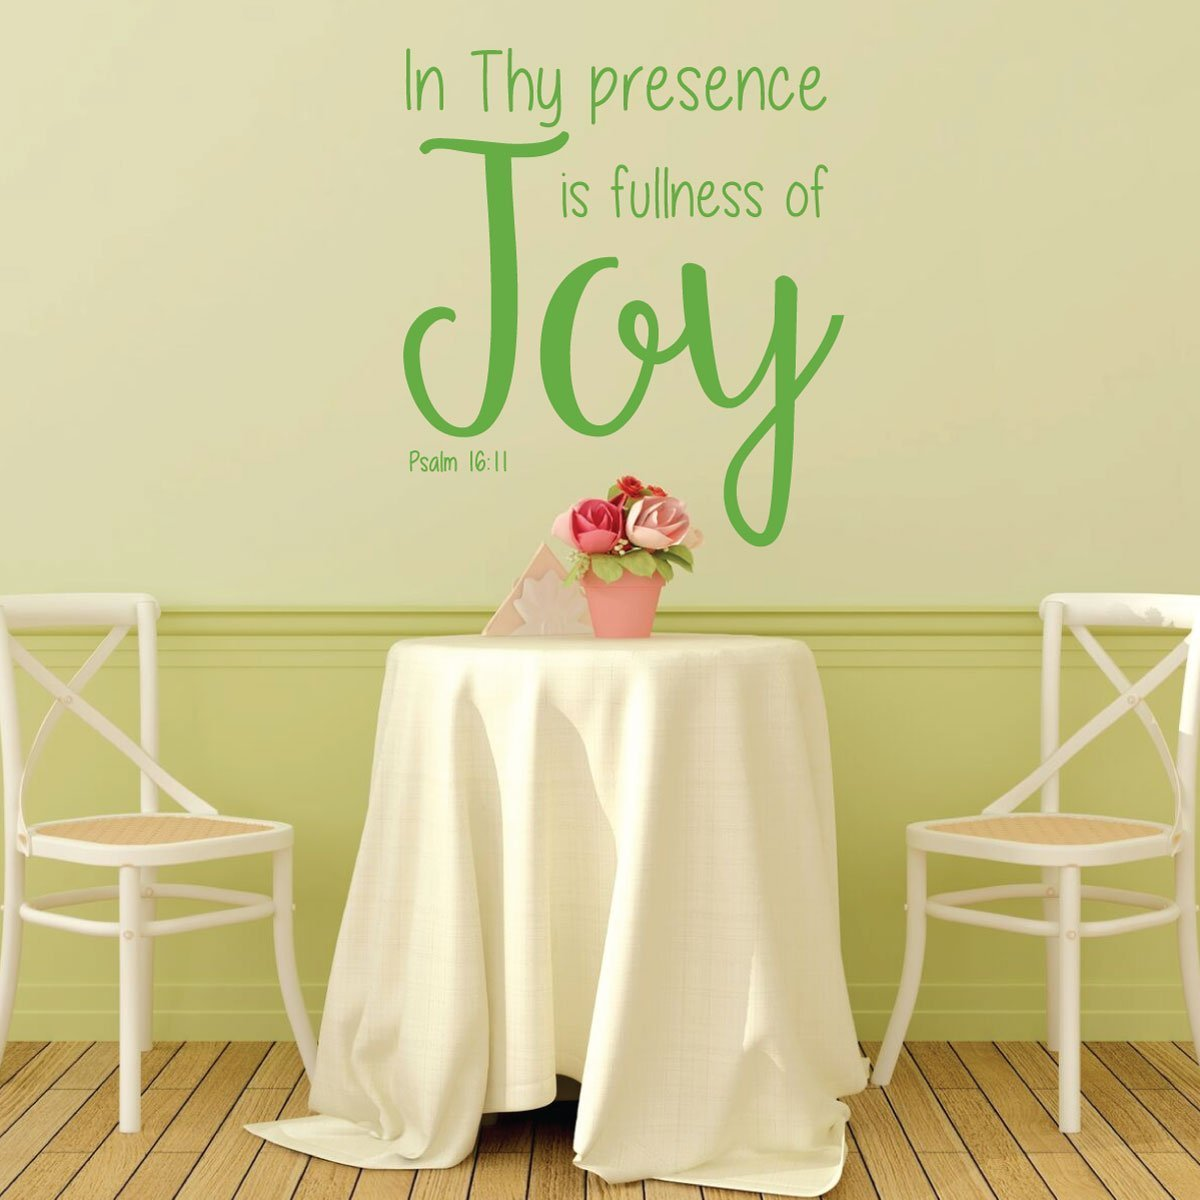 Bible Verse Wall Decal - Psalm 16:11 - In Thy Presence is Fullness of Joy